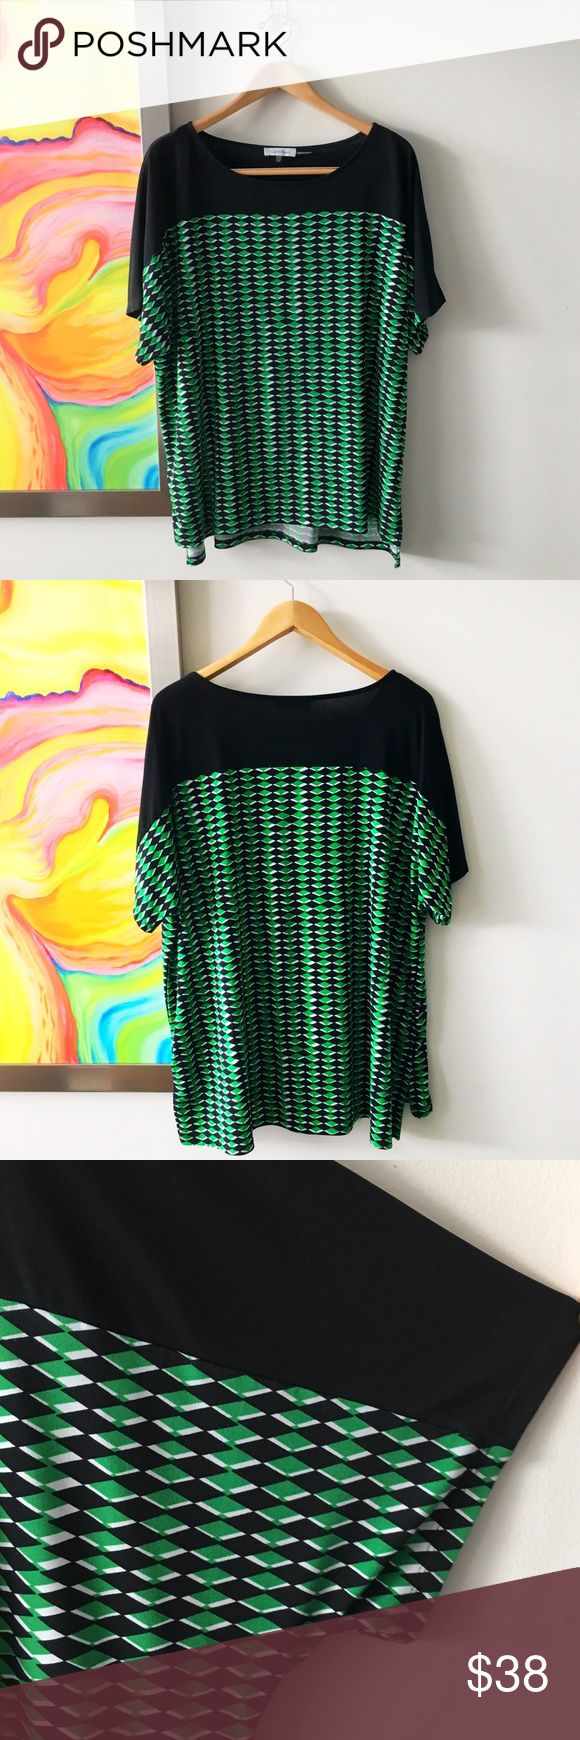 CALVIN KLEIN Geo Green Tunic Worn once. Pretty geometric pattern in kelly green, black and white. Sleeves hit above interior elbow and higher on the outside, like a soft batwing style. Great with skinny jeans or belted with a skirt. True to size. Calvin Klein Tops Tunics